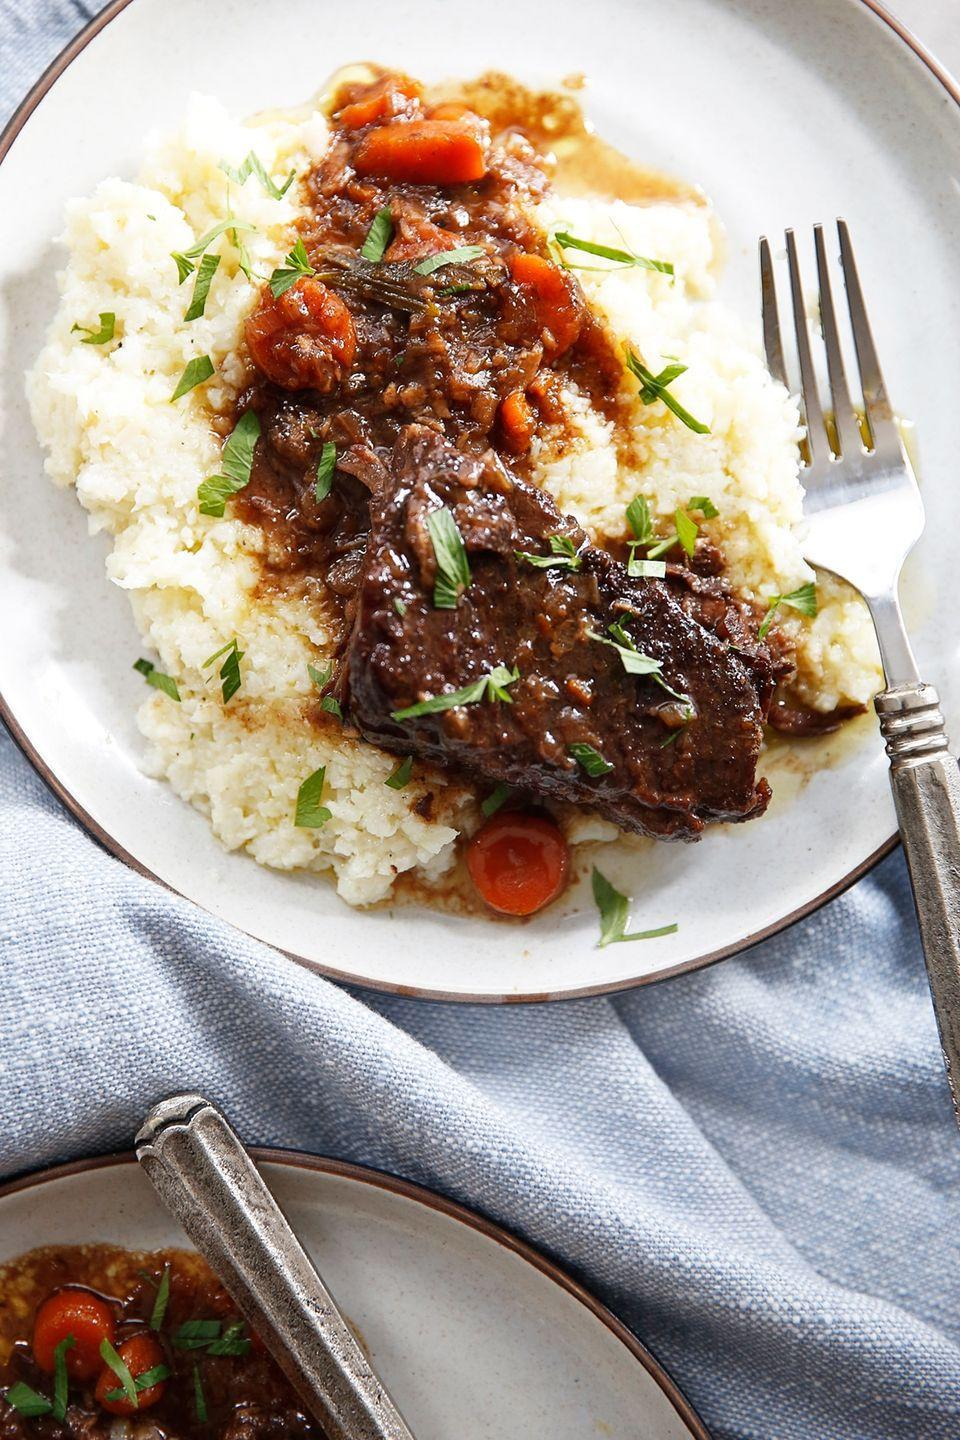 """<p>These beef short ribs by<a href=""""https://lexiscleankitchen.com/instant-pot-beef-short-ribs/"""" rel=""""nofollow noopener"""" target=""""_blank"""" data-ylk=""""slk:Lexi's Clean Kitchen"""" class=""""link rapid-noclick-resp""""> Lexi's Clean Kitchen</a> swap mashed potatoes for cauliflower mash to make it lower in carbs and higher in fiber to promote weight loss. Short ribs offer a nice amount of protein to keep you full and the grass-fed butter or olive oil provide good-for-you fats. A tip? Boneless beef will decrease the cooking time.</p>"""